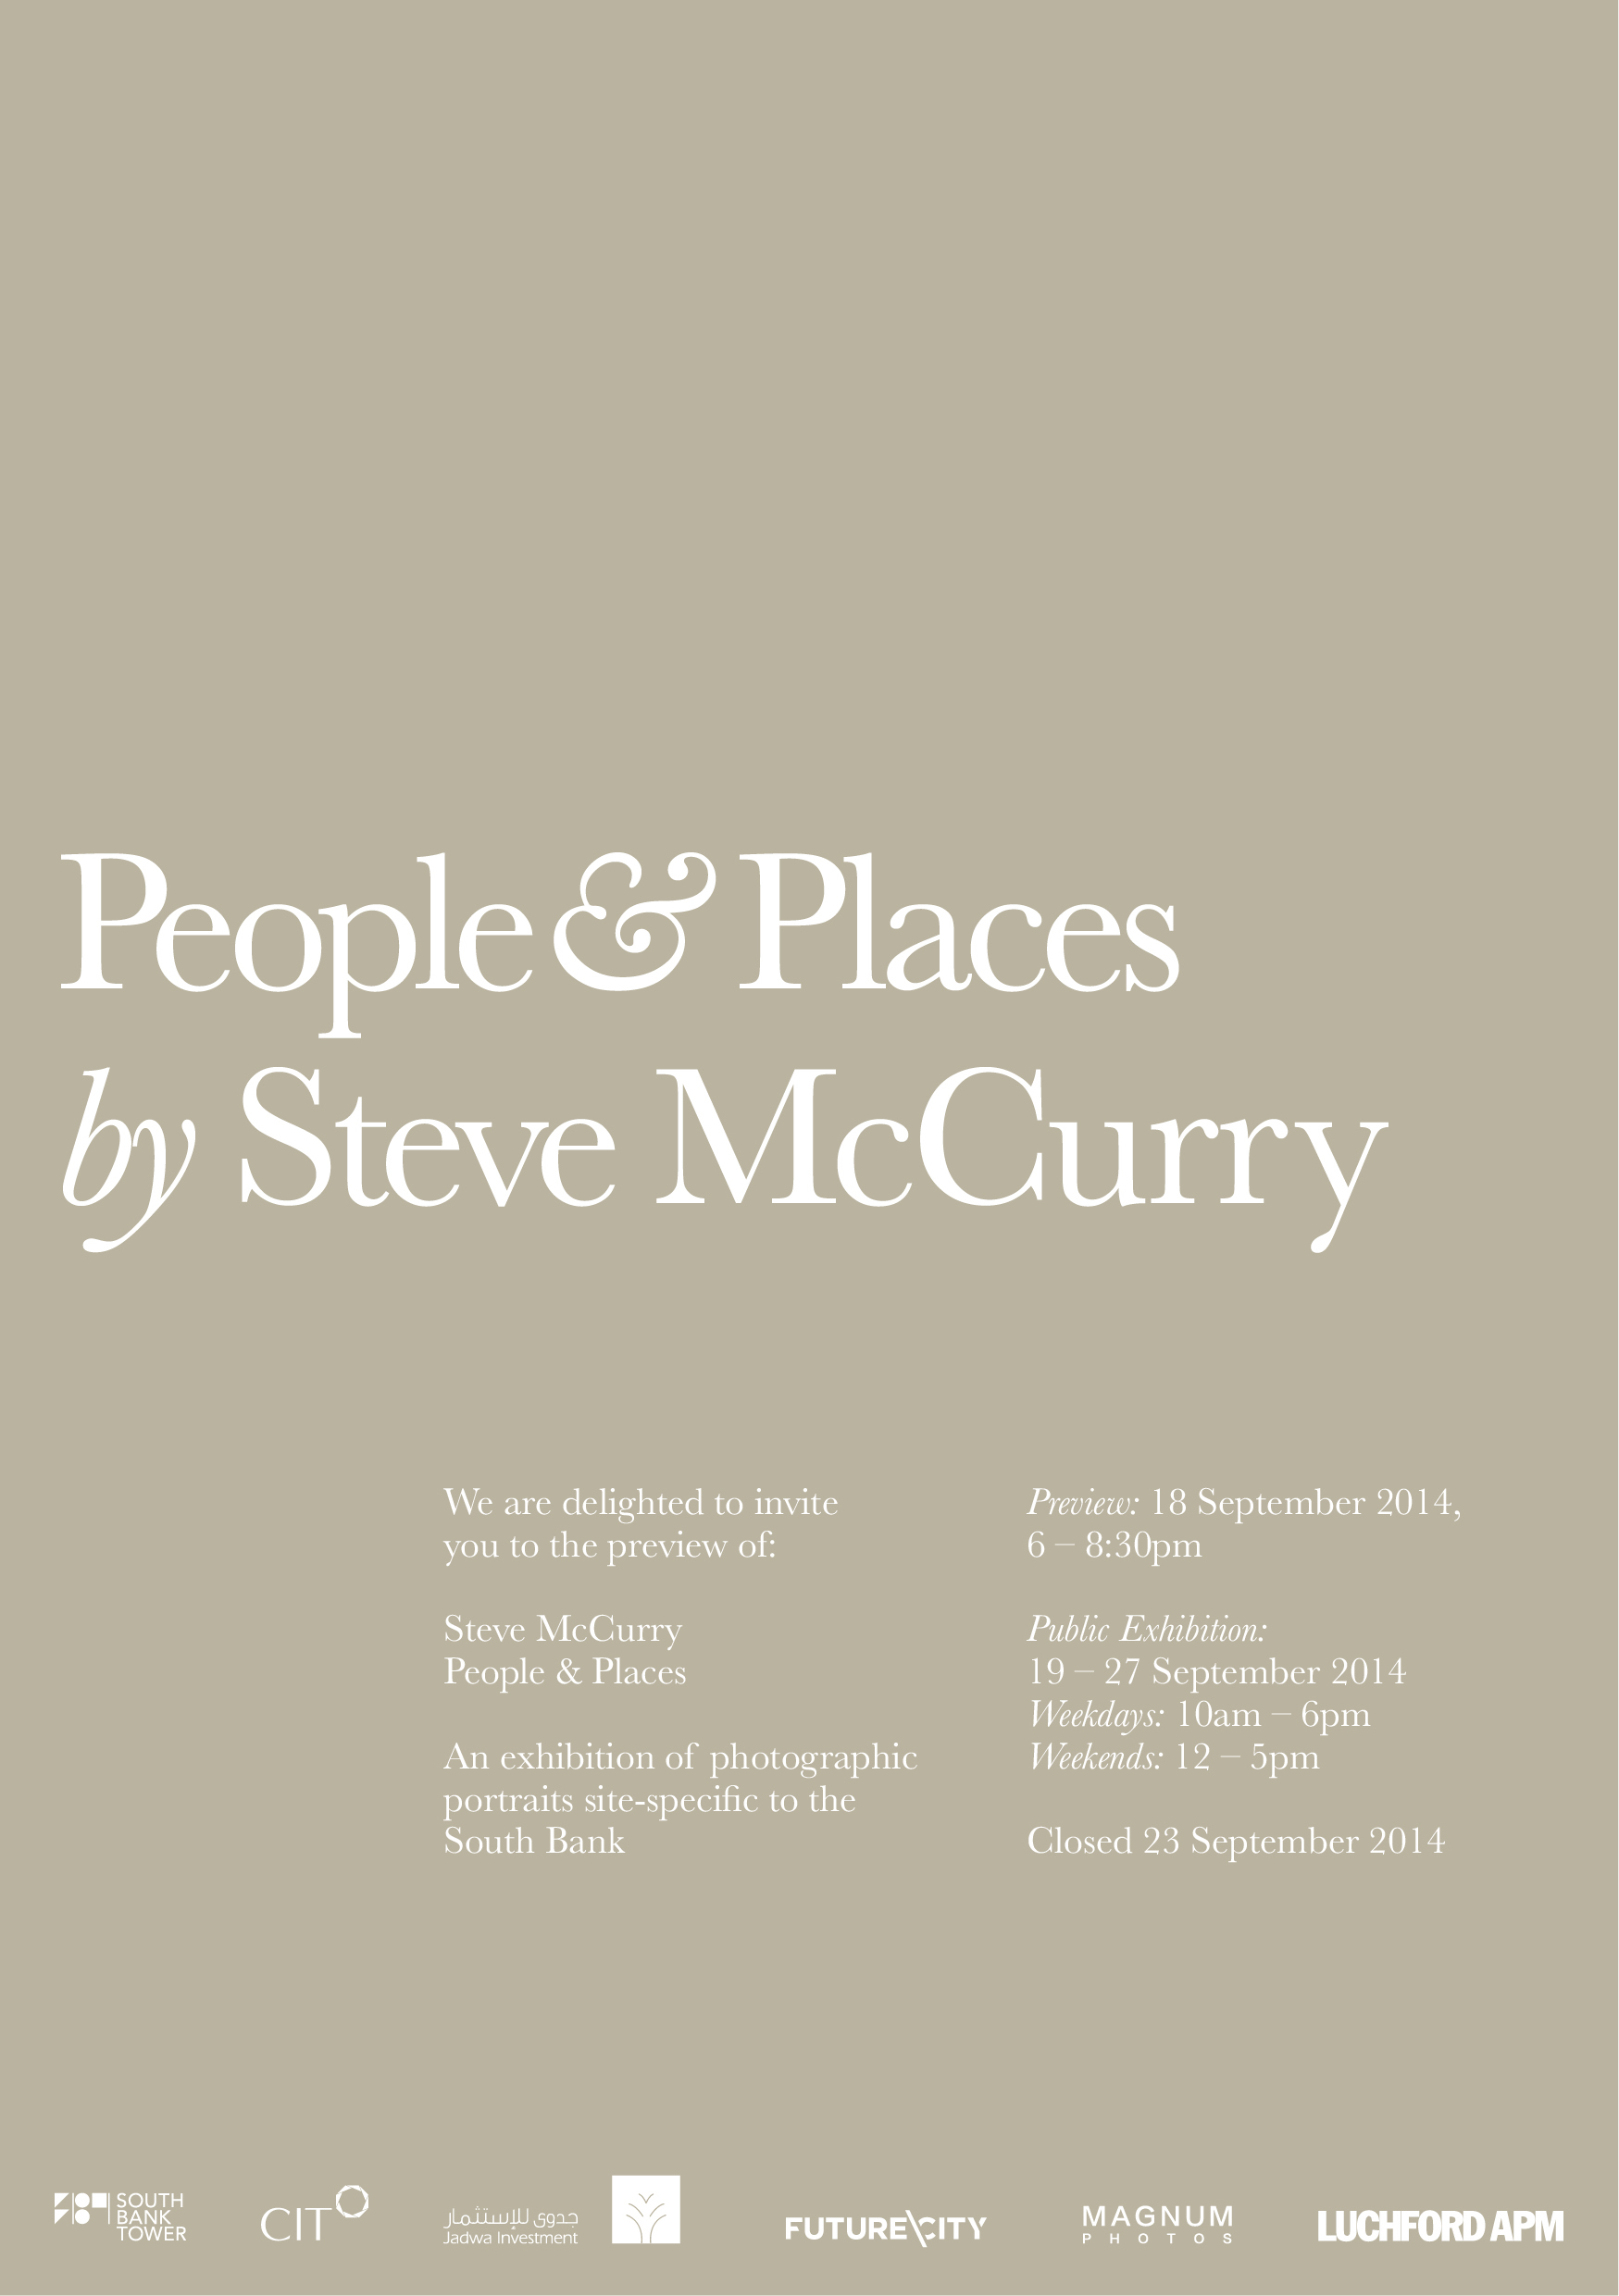 People & Places Steve Mac Curry and Magnum exhibition is open to the public at the Southbank Tower until 27th Septembre 2014.